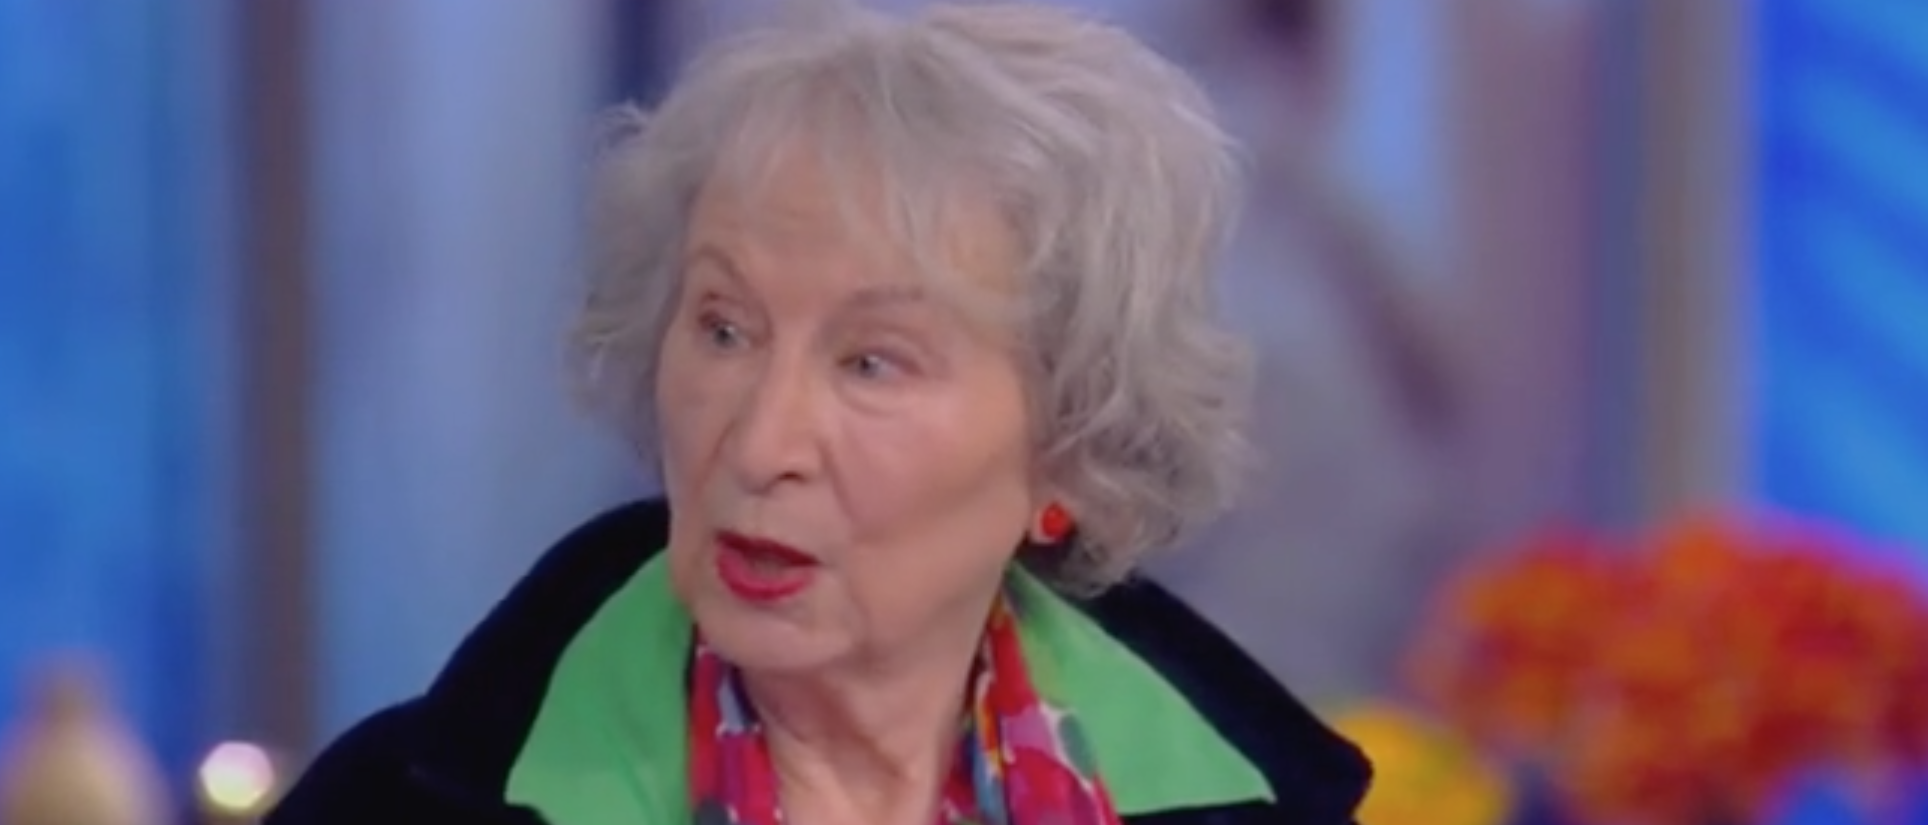 'The Handmaid's Tale' Author Claims Warming Oceans Will Cause Traffic Accidents